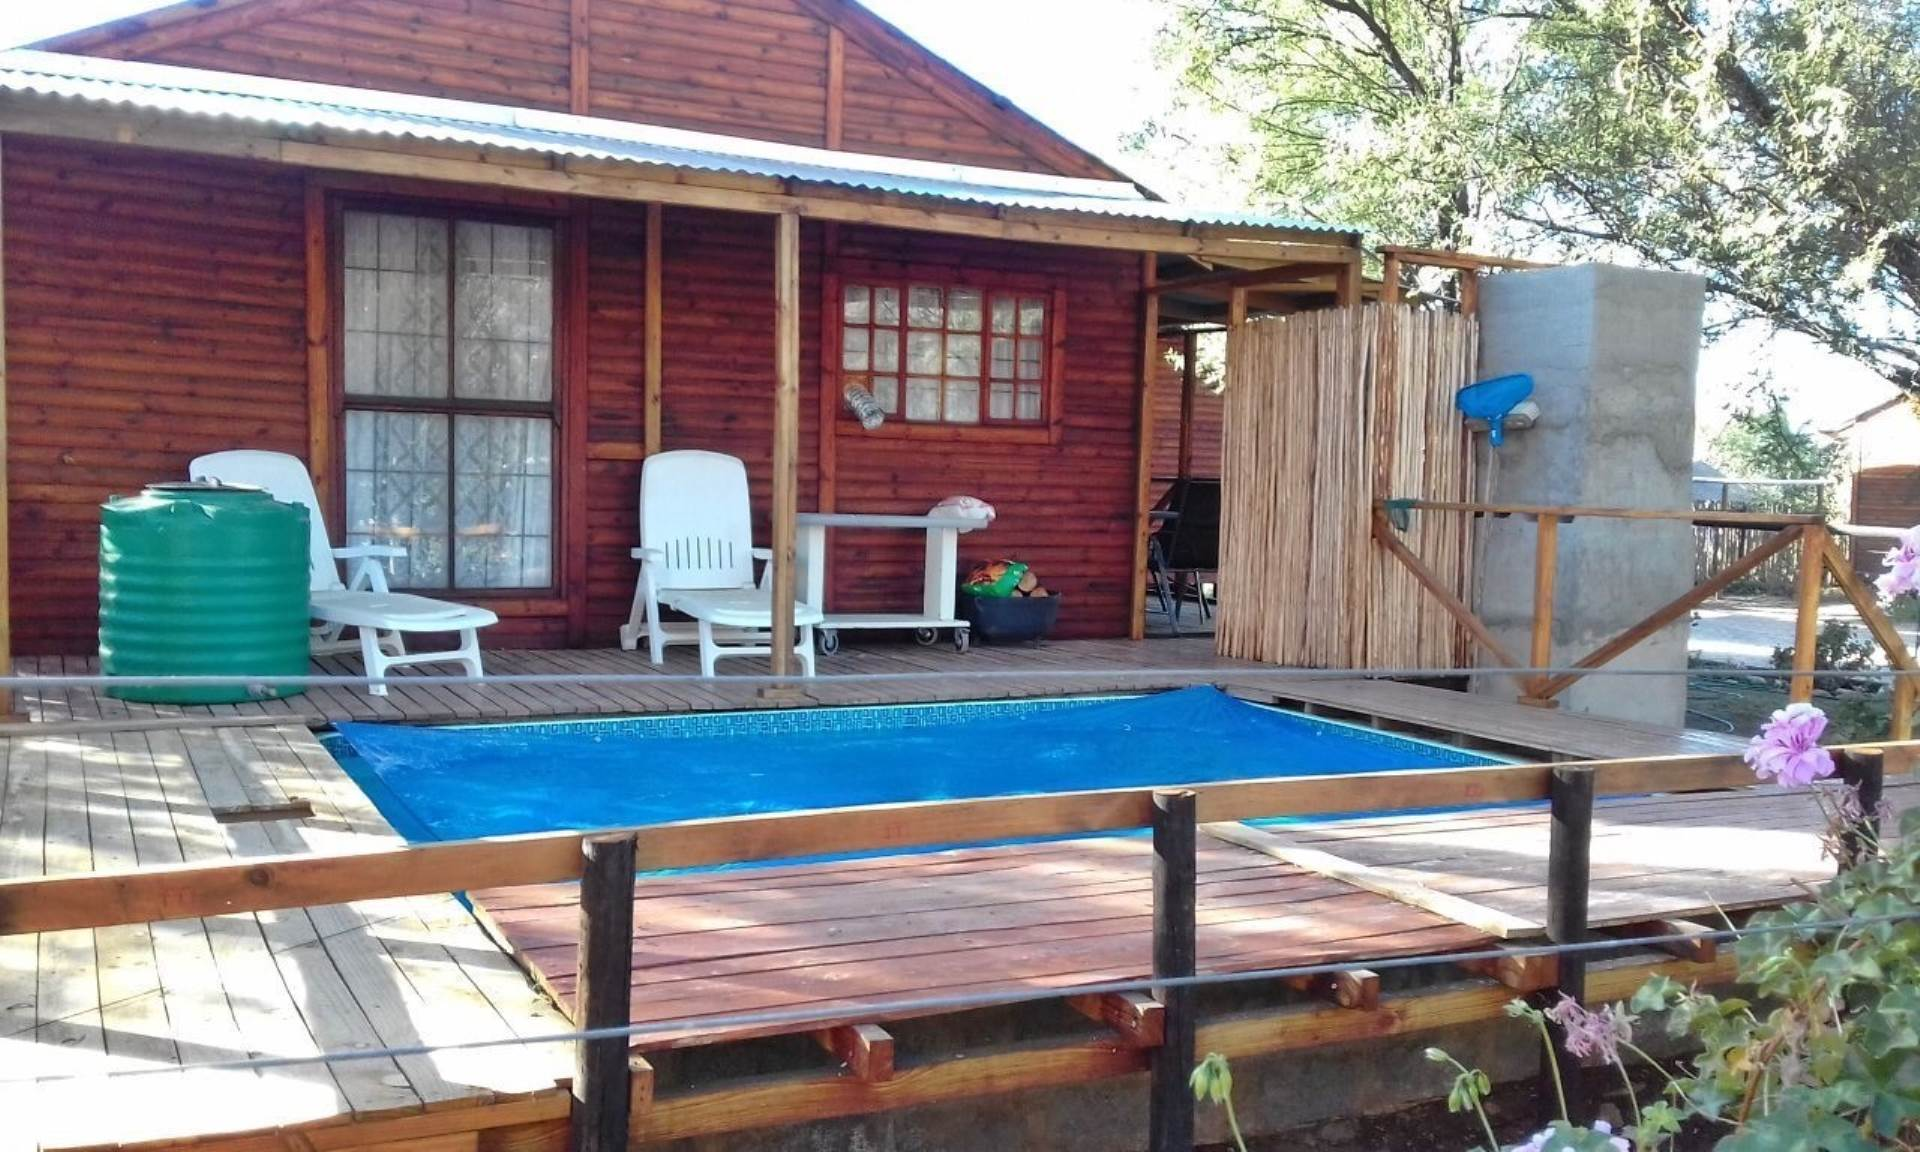 6 BedroomGuest House For Sale In Prince Albert